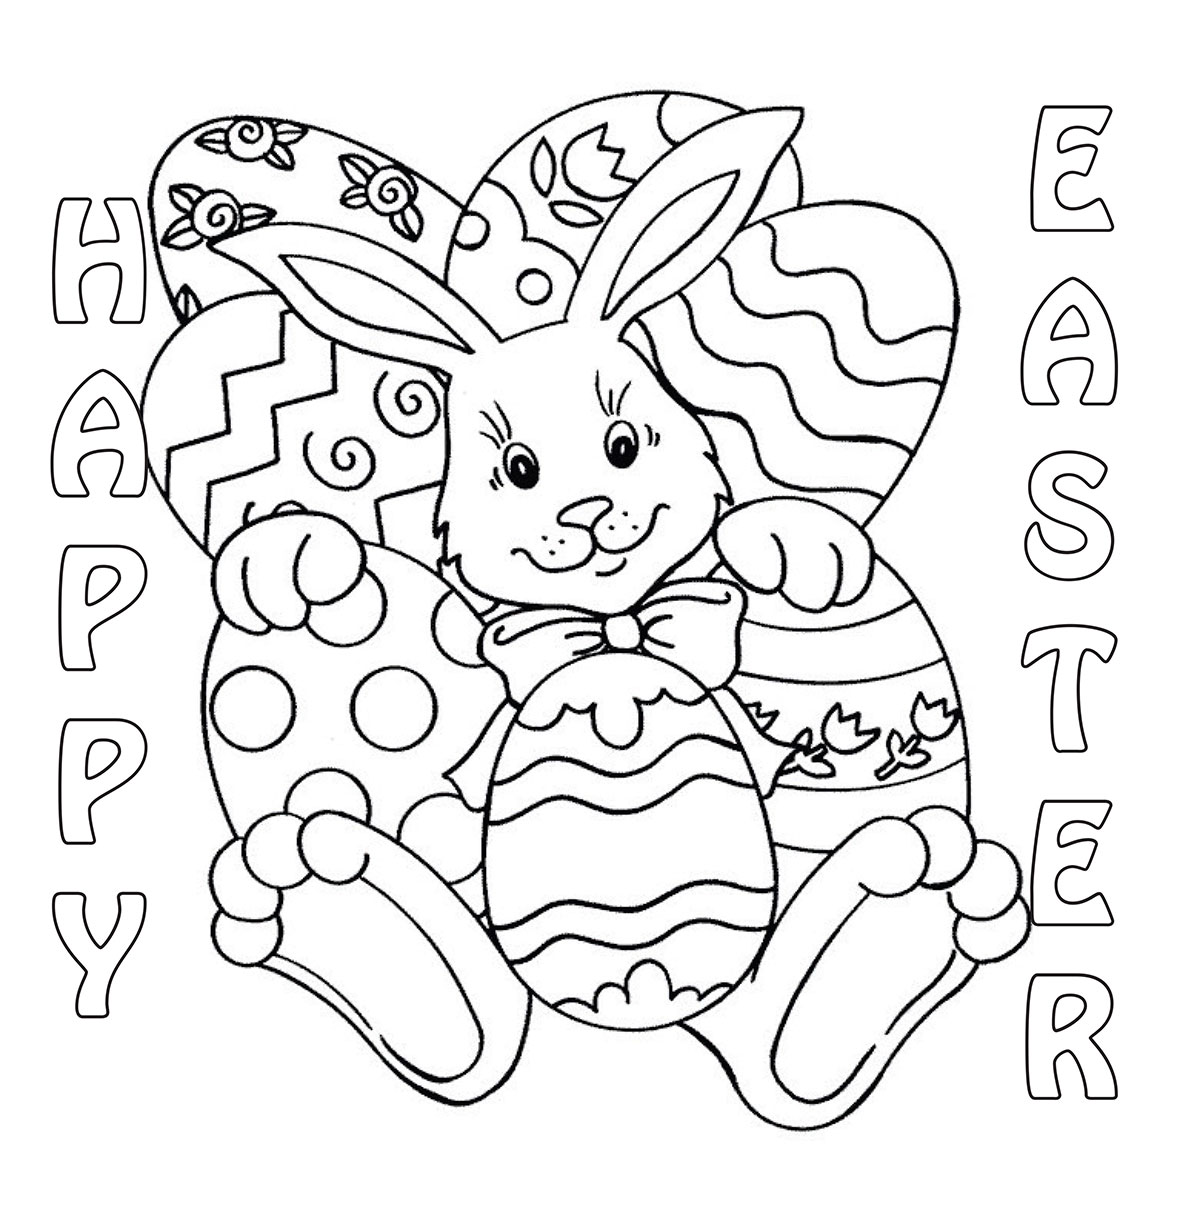 20 Of The Best Ideas For Easter Bunny Coloring Pages To